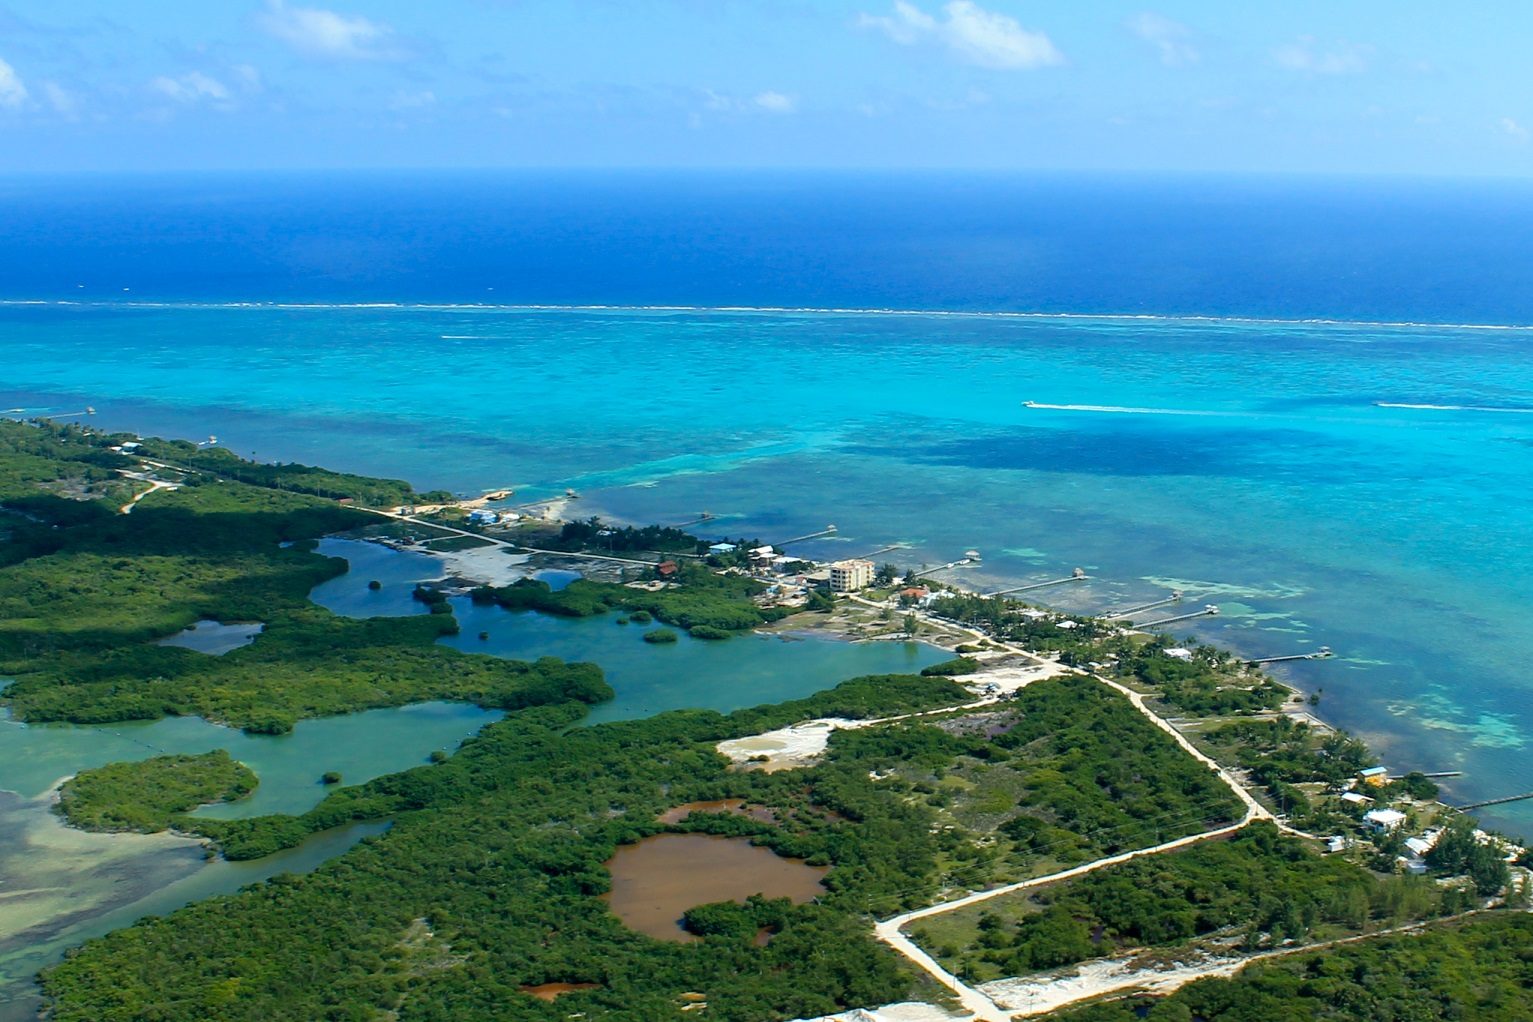 Belize's barrier reef runs right in front on Ambergris Caye